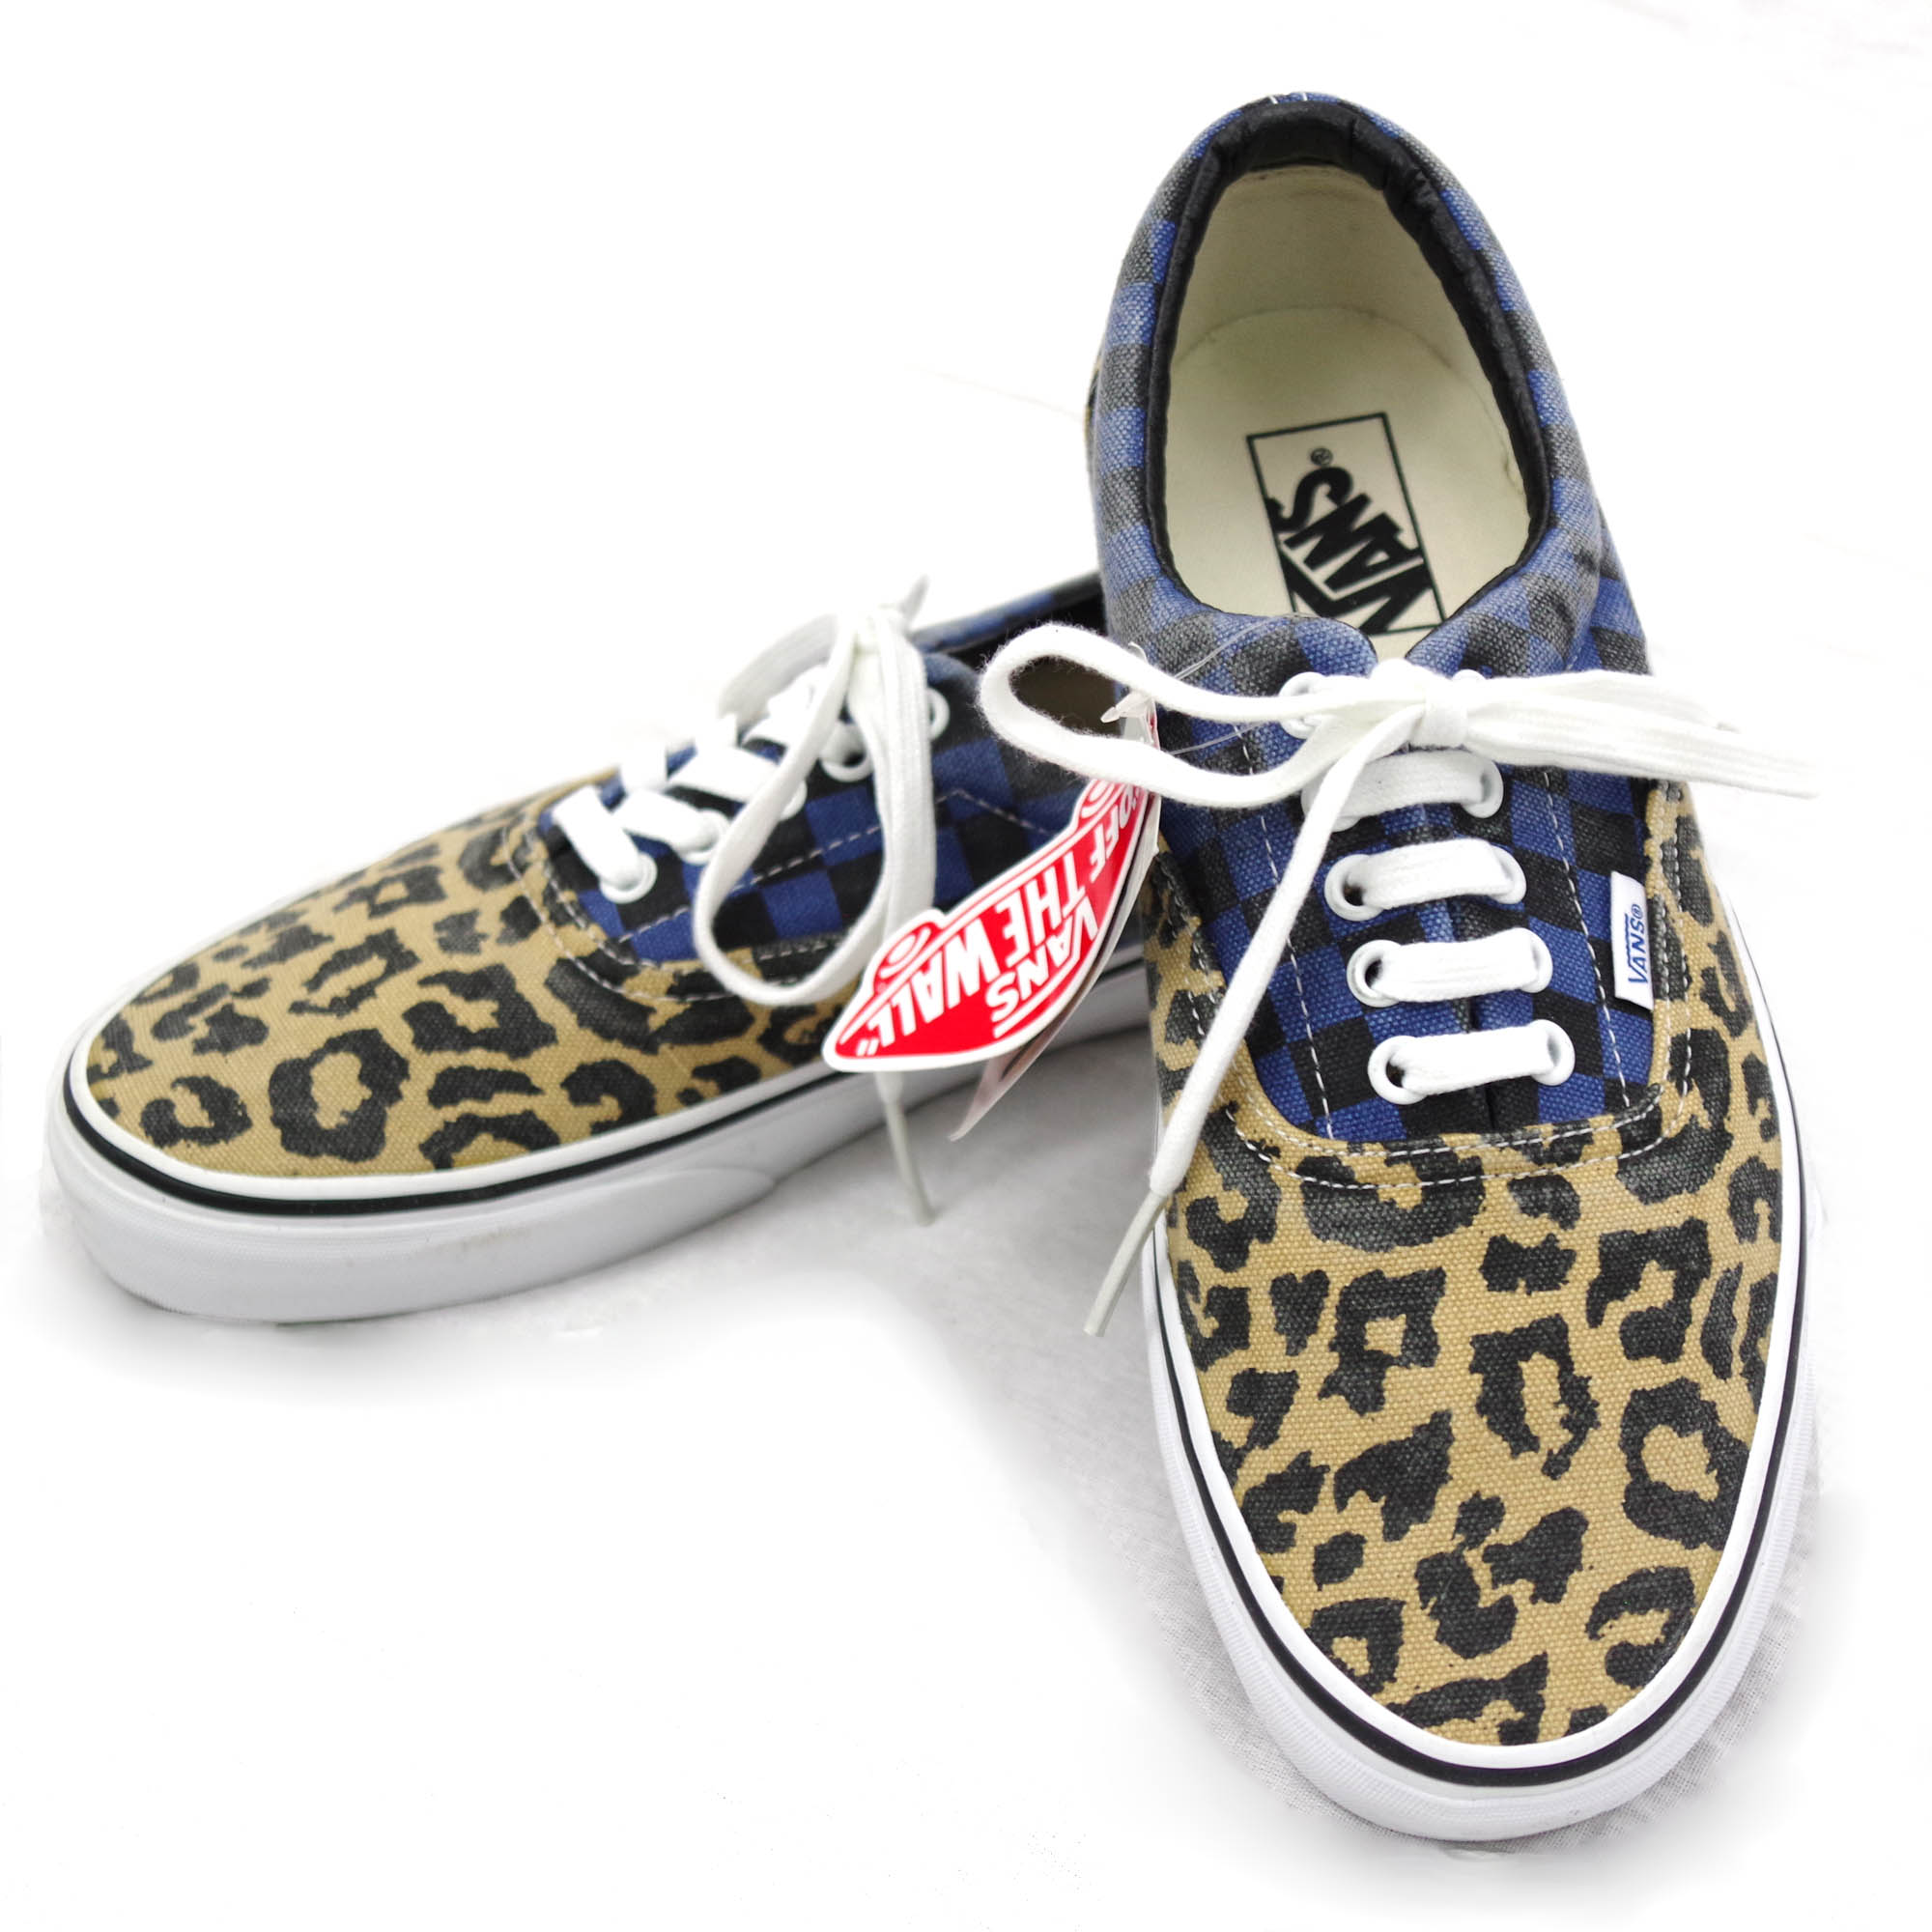 色落ちあり(20%OFF)DEADSTOCK Era Van Doren Leopard/Checker【VANS】